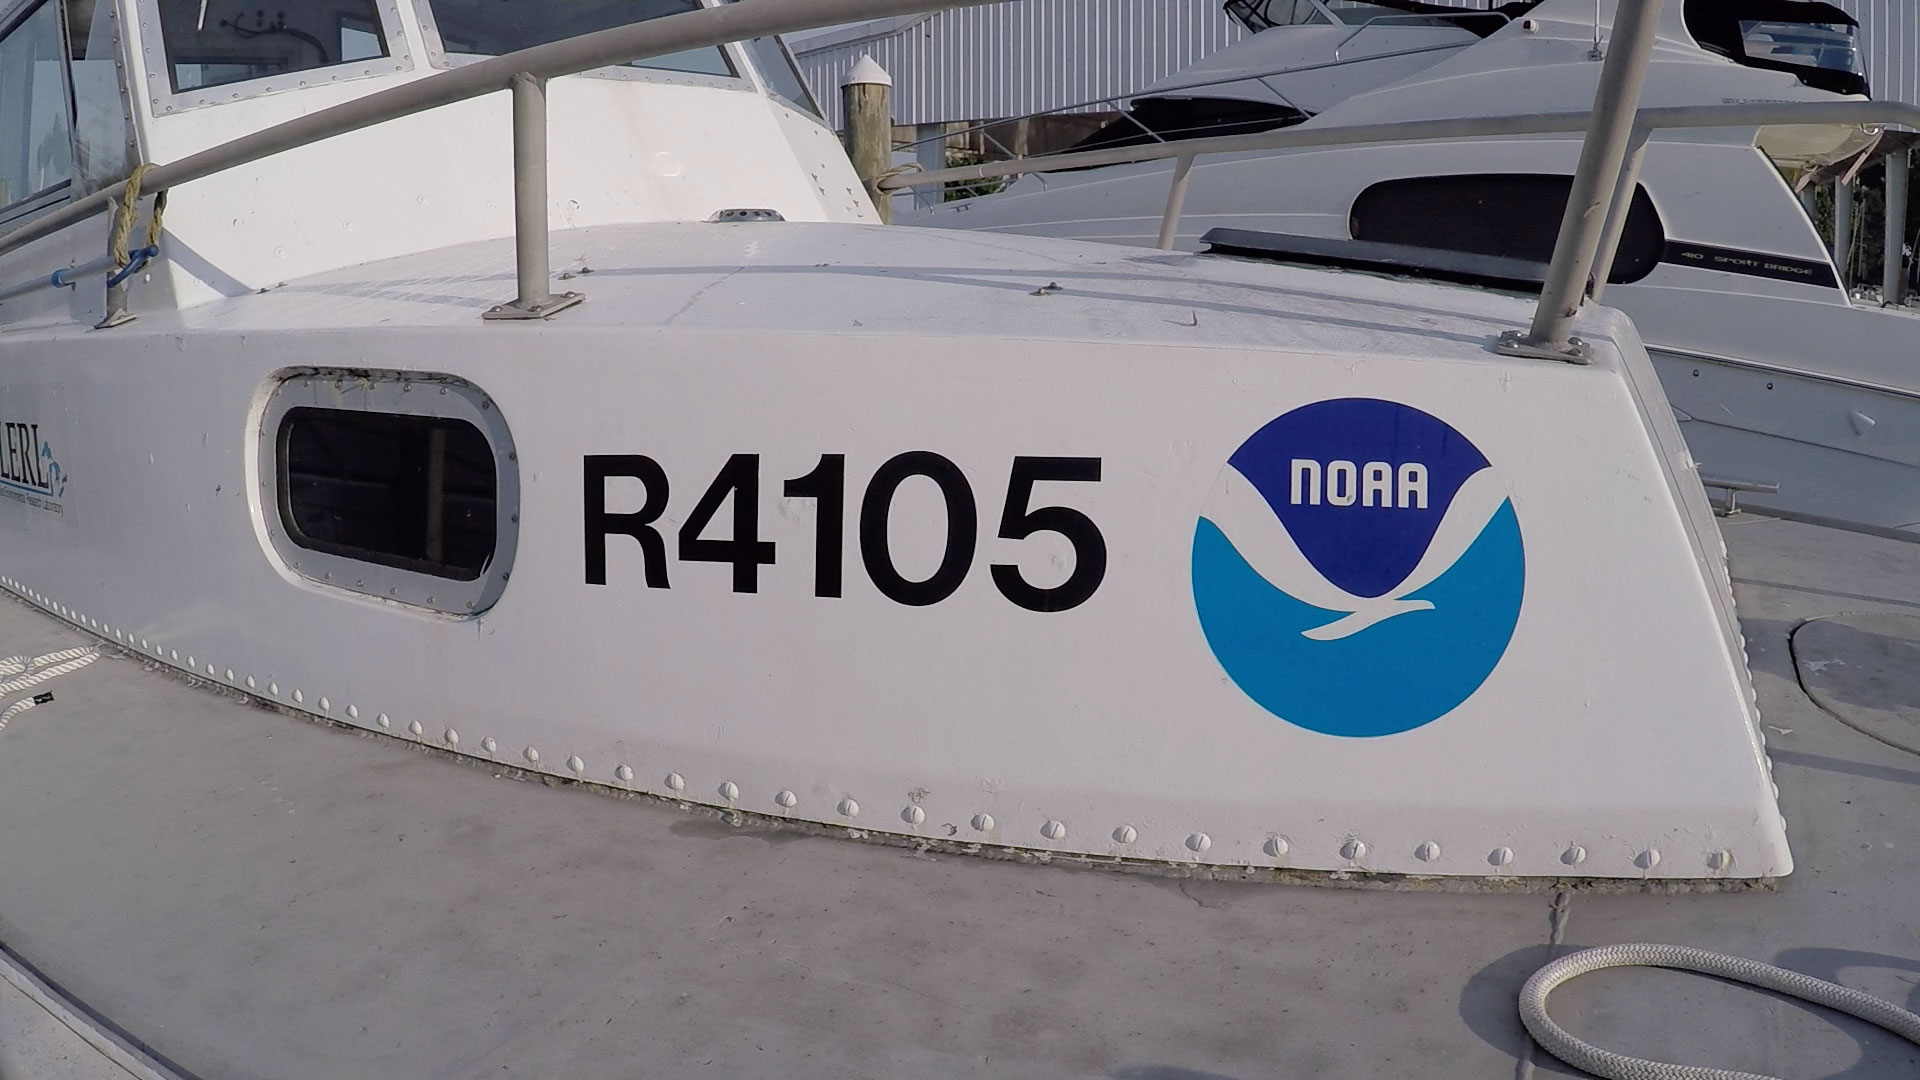 NOAA research vessel. Image credit: Mike Wood